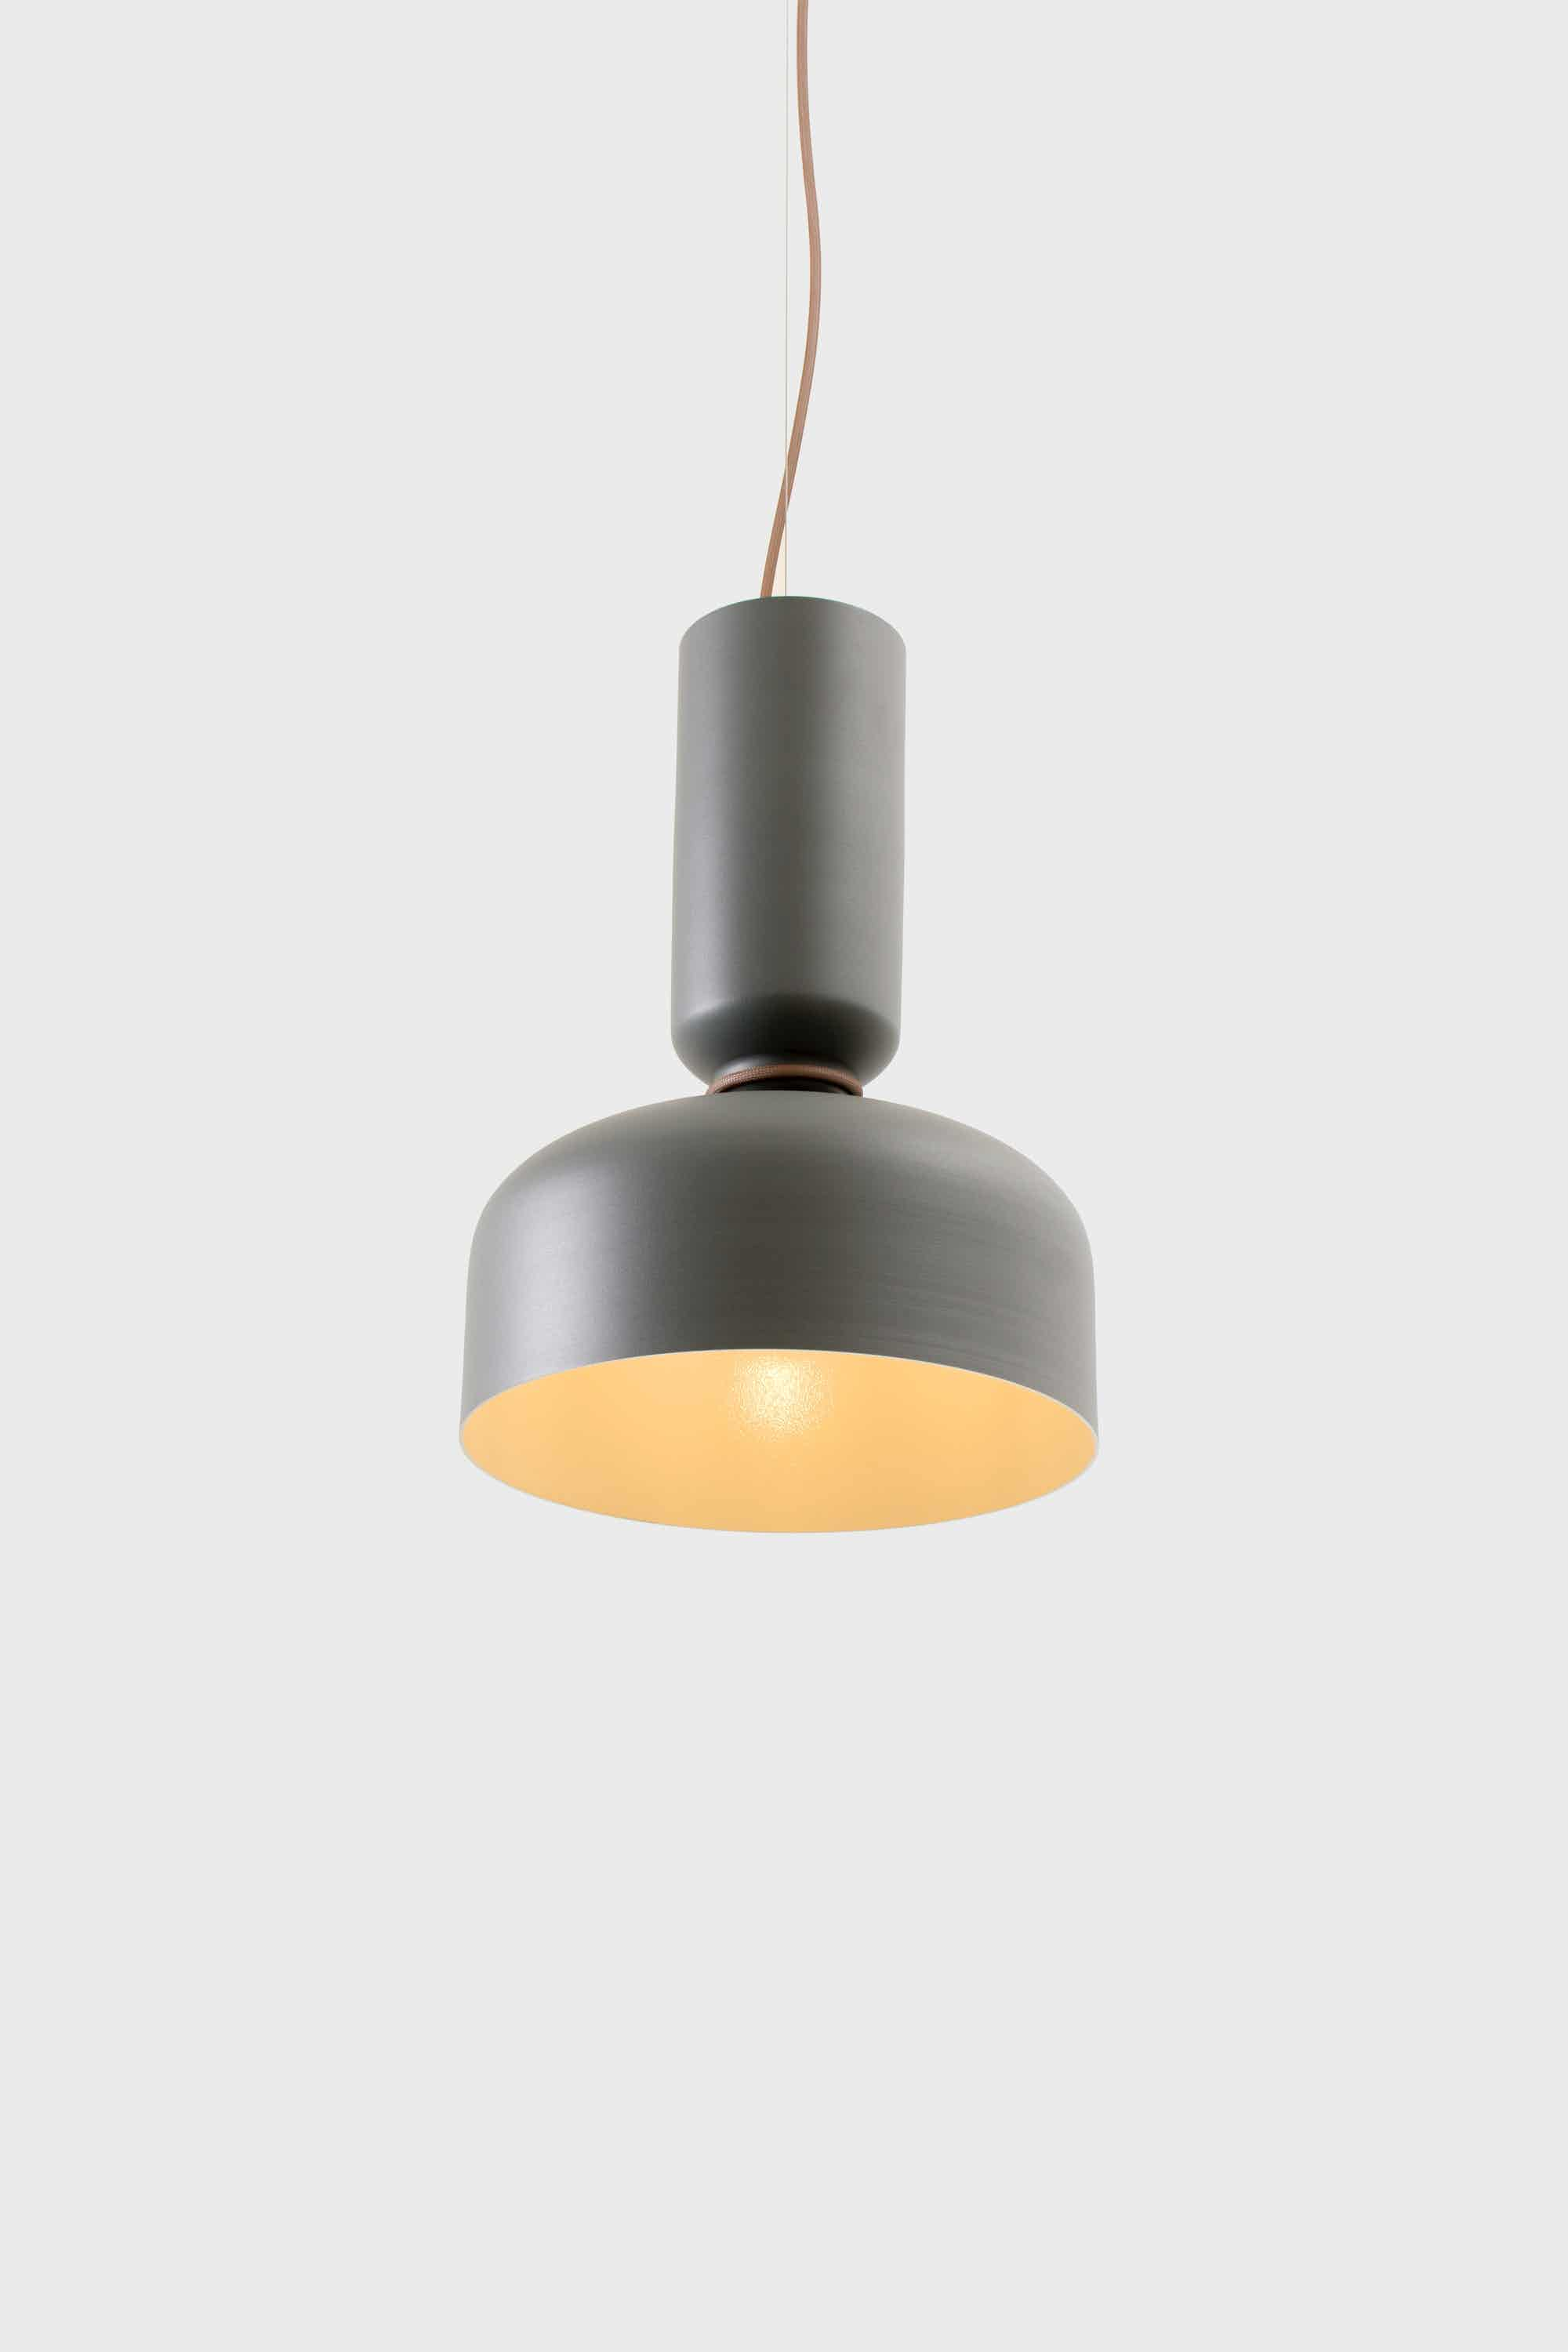 Andlight Spotlight Volumes pendant light haute living